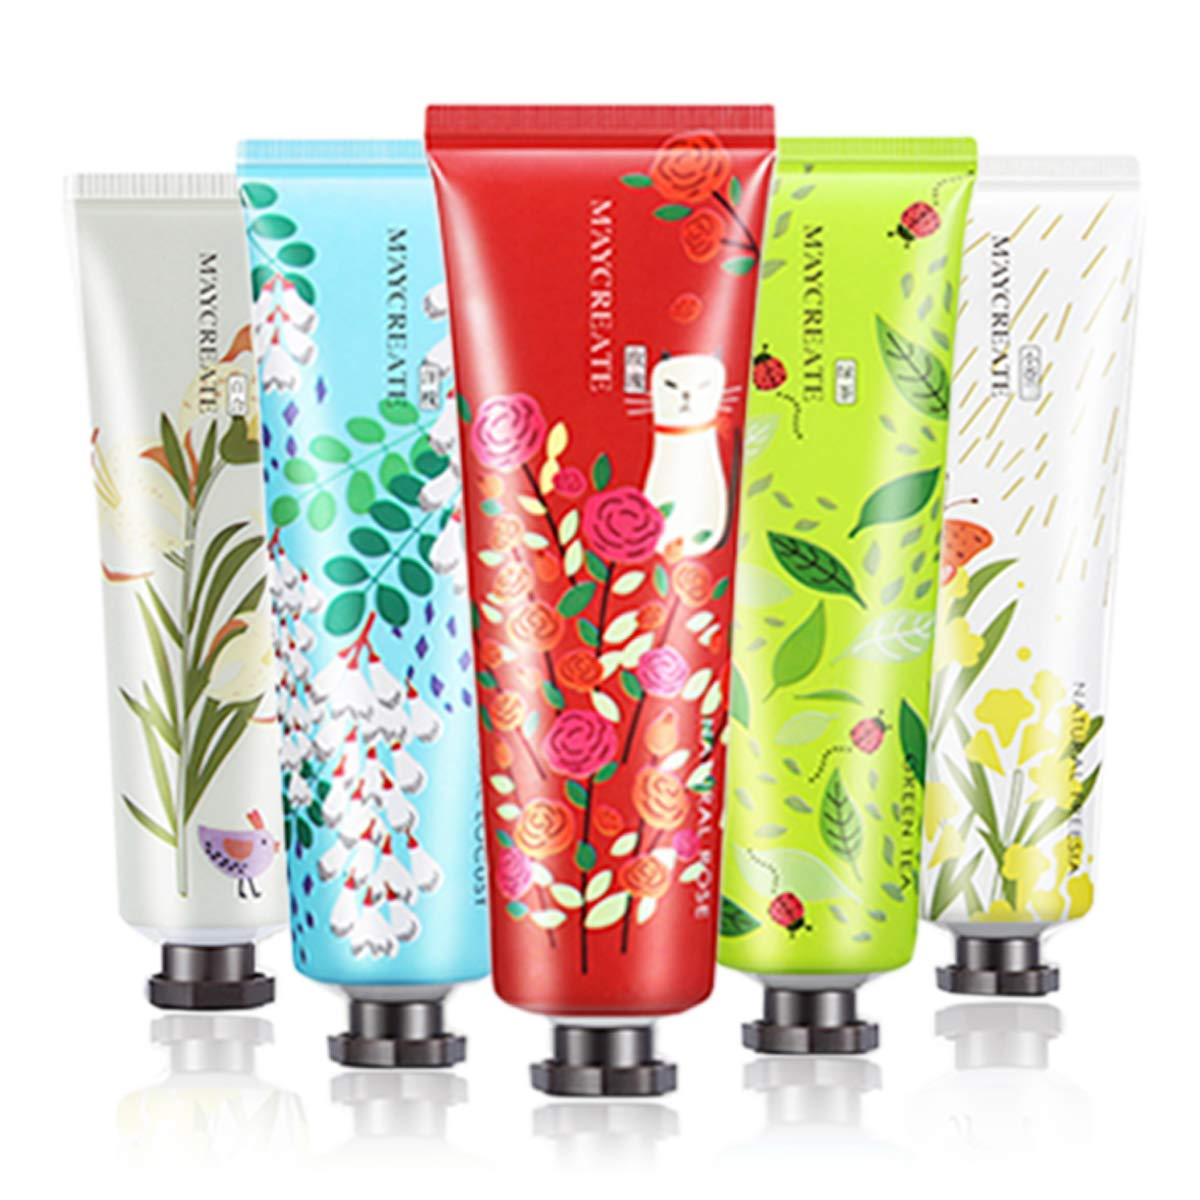 Tophany 5 Pack Plant Flower Extract Fragrance Hand Cream With Natural Aloe And Vitamin E, Family Travel Moisturizing Hand Feet Care Cream Hand Cream Gift Set for Women and Men